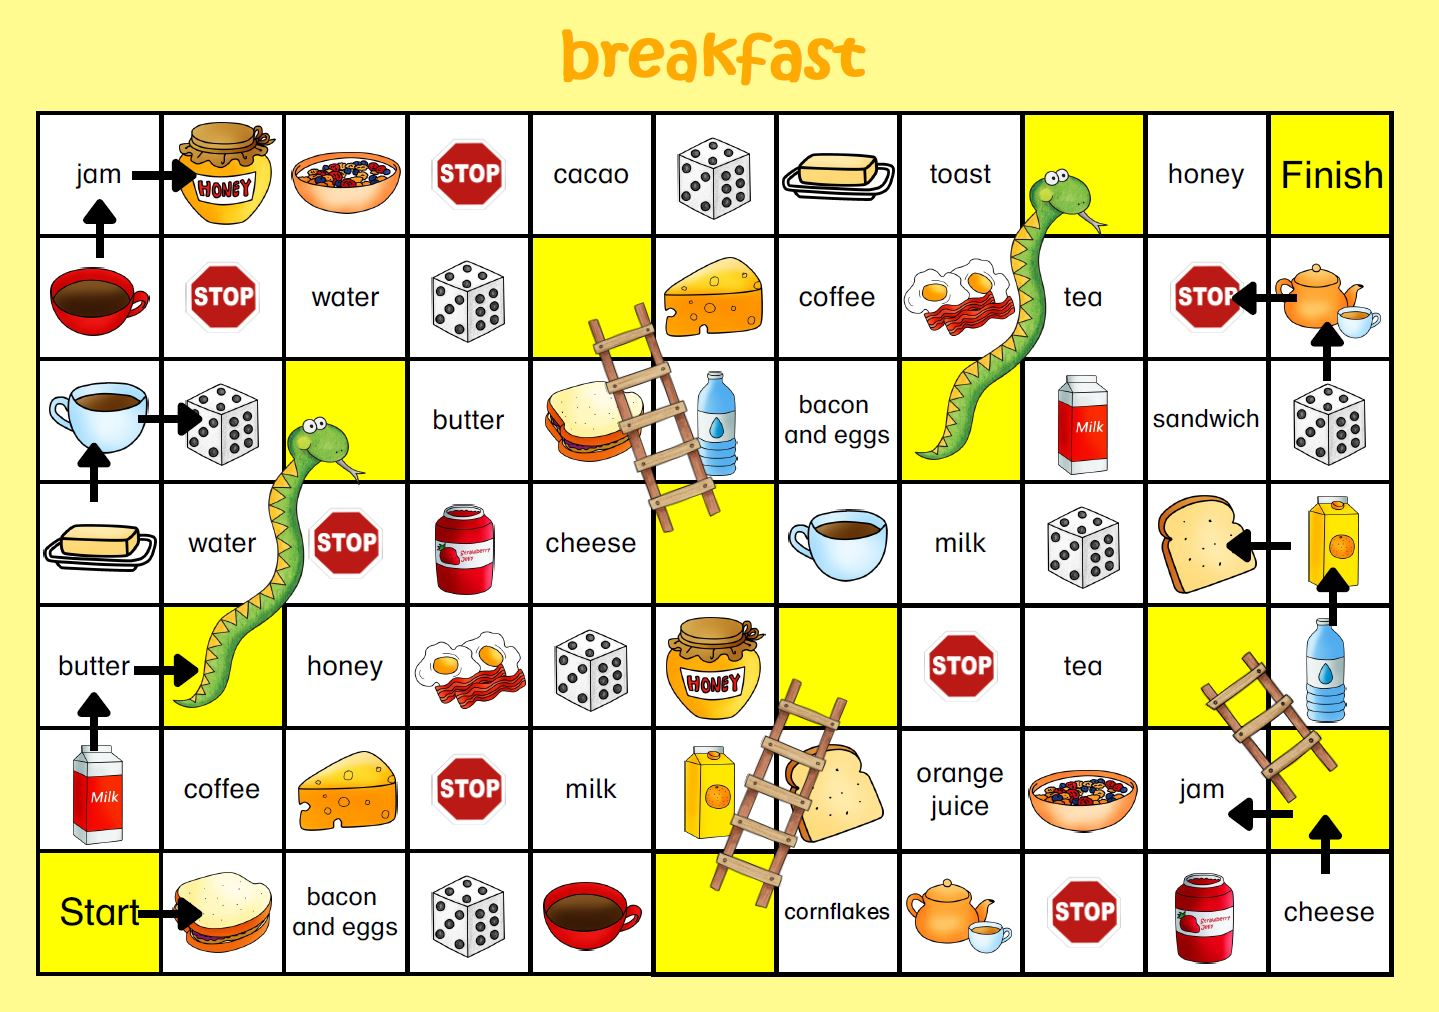 snakes and ladders breakfast